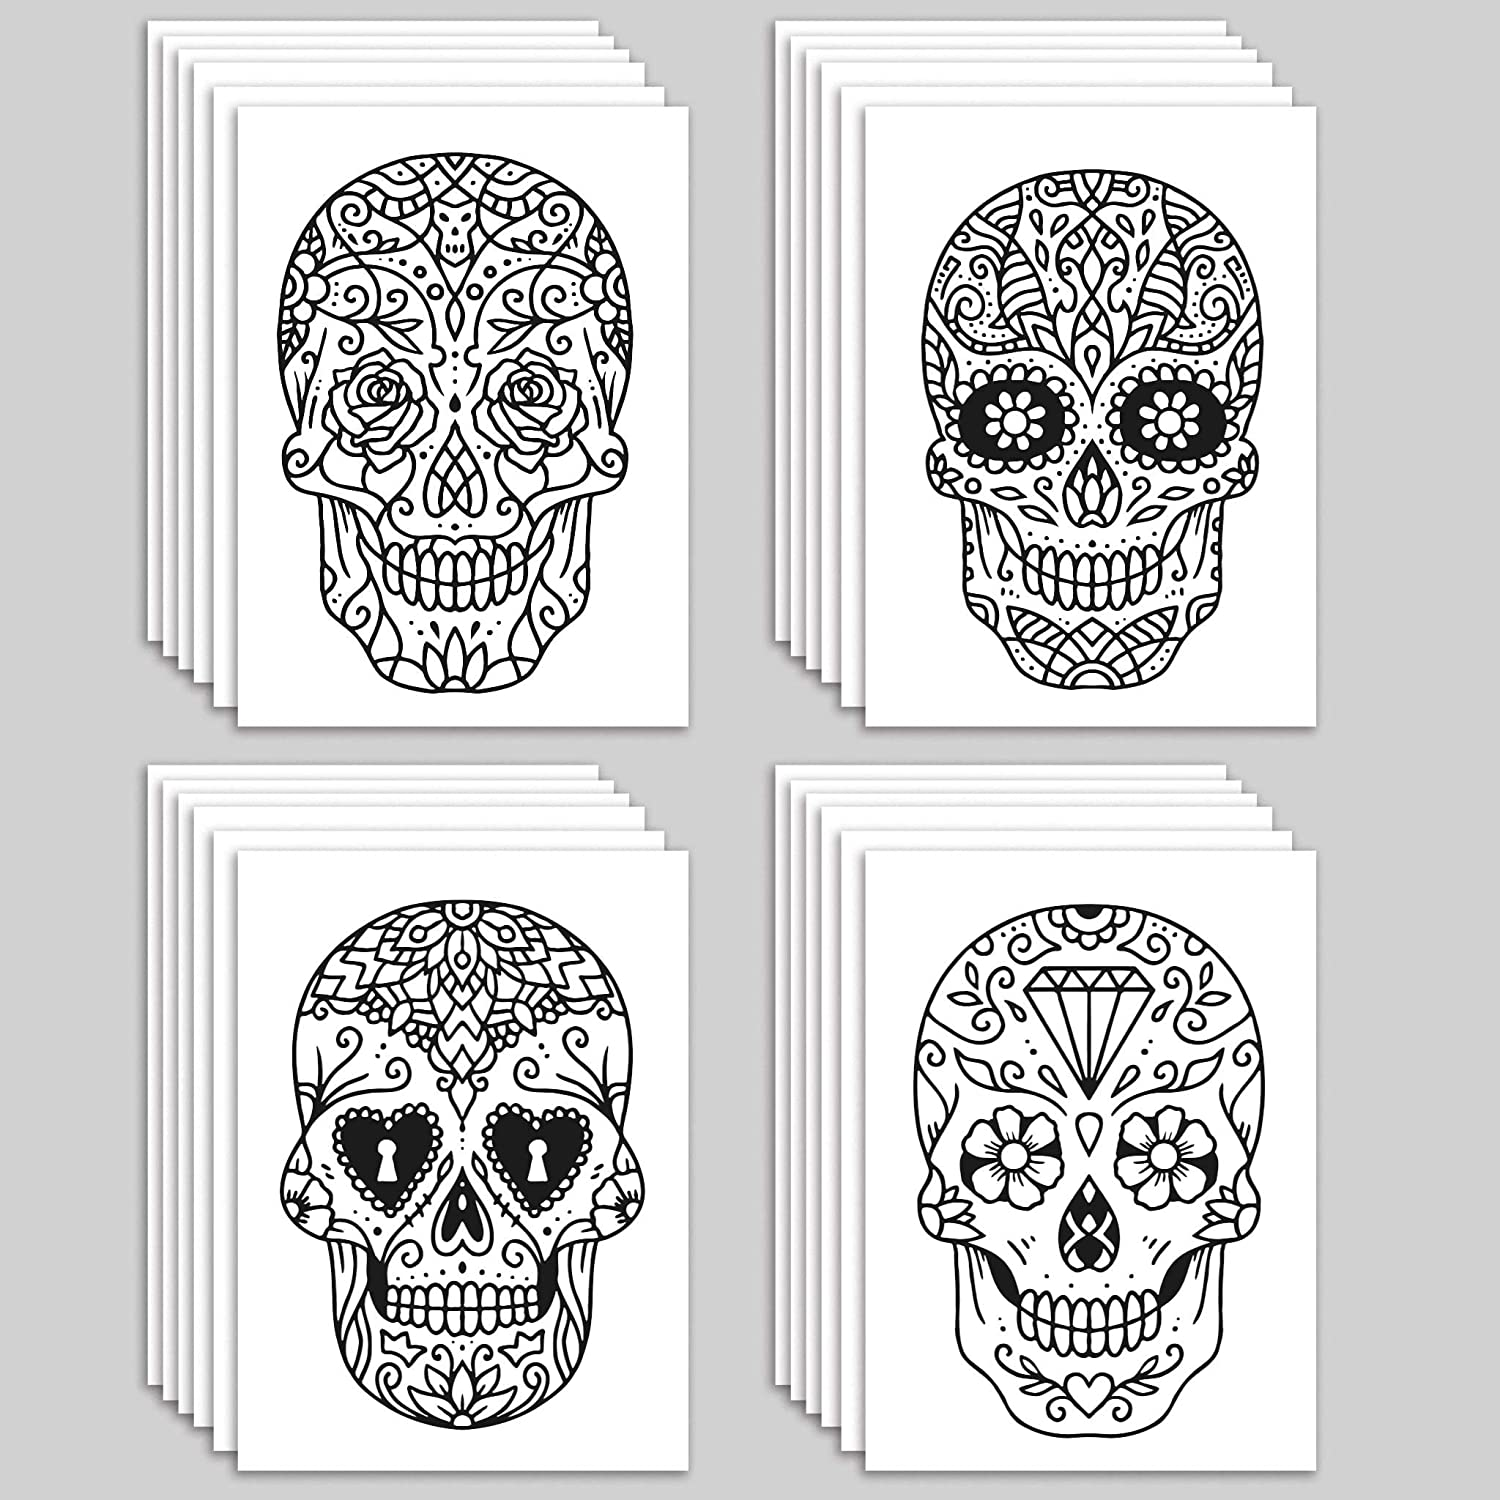 Halloween Sale Special Price New Shipping Free Shipping Beautiful Skulls Greeting Cards Env + - 24 Blank